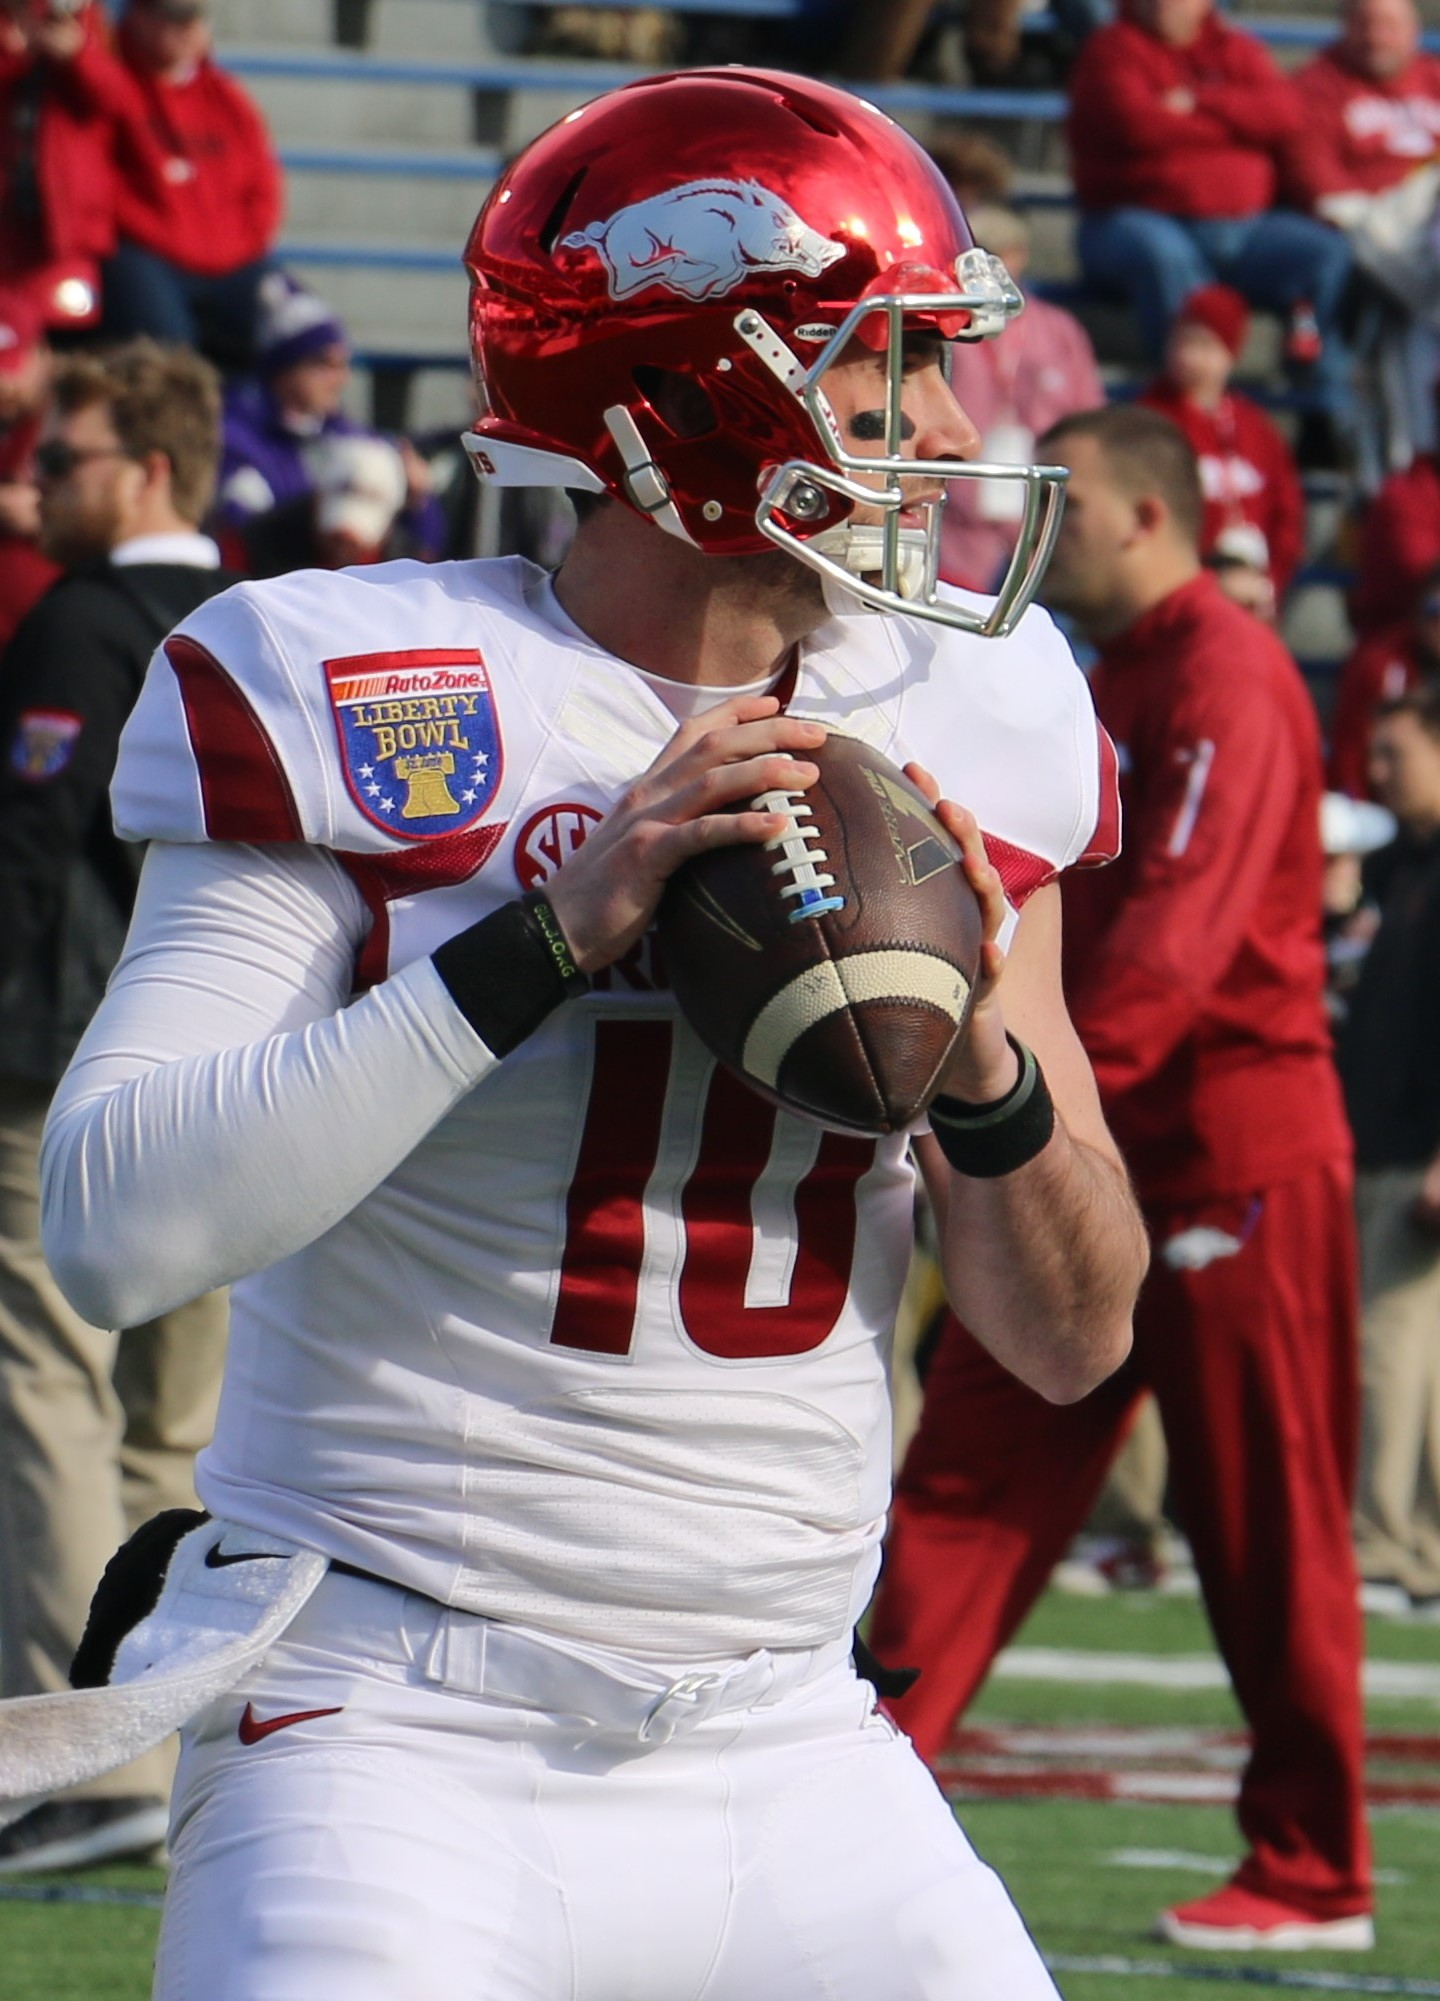 Brandon Allen In 2016 Liberty BowlJPG